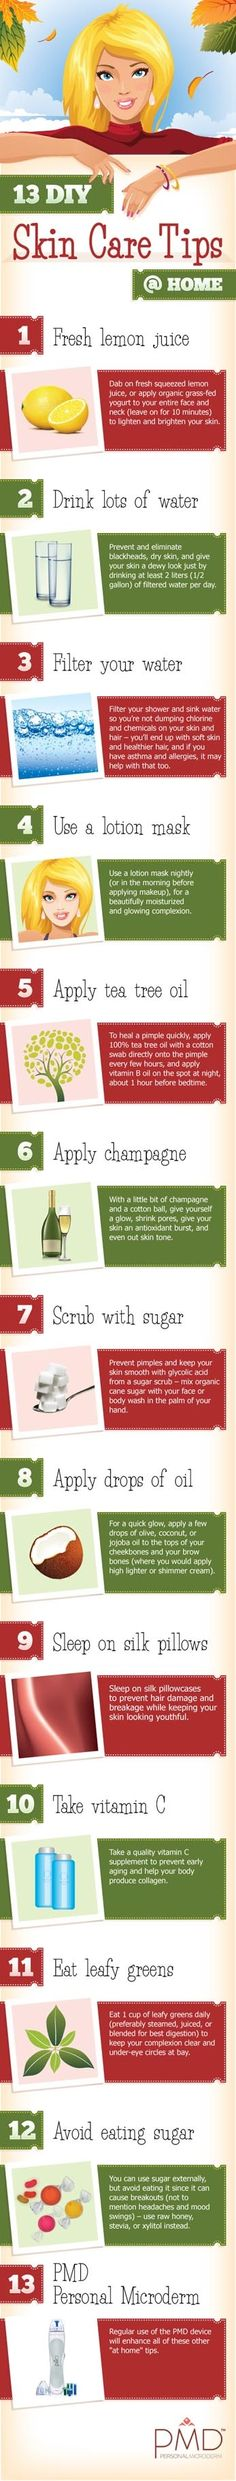 13 DIY Skin Care Tips at home